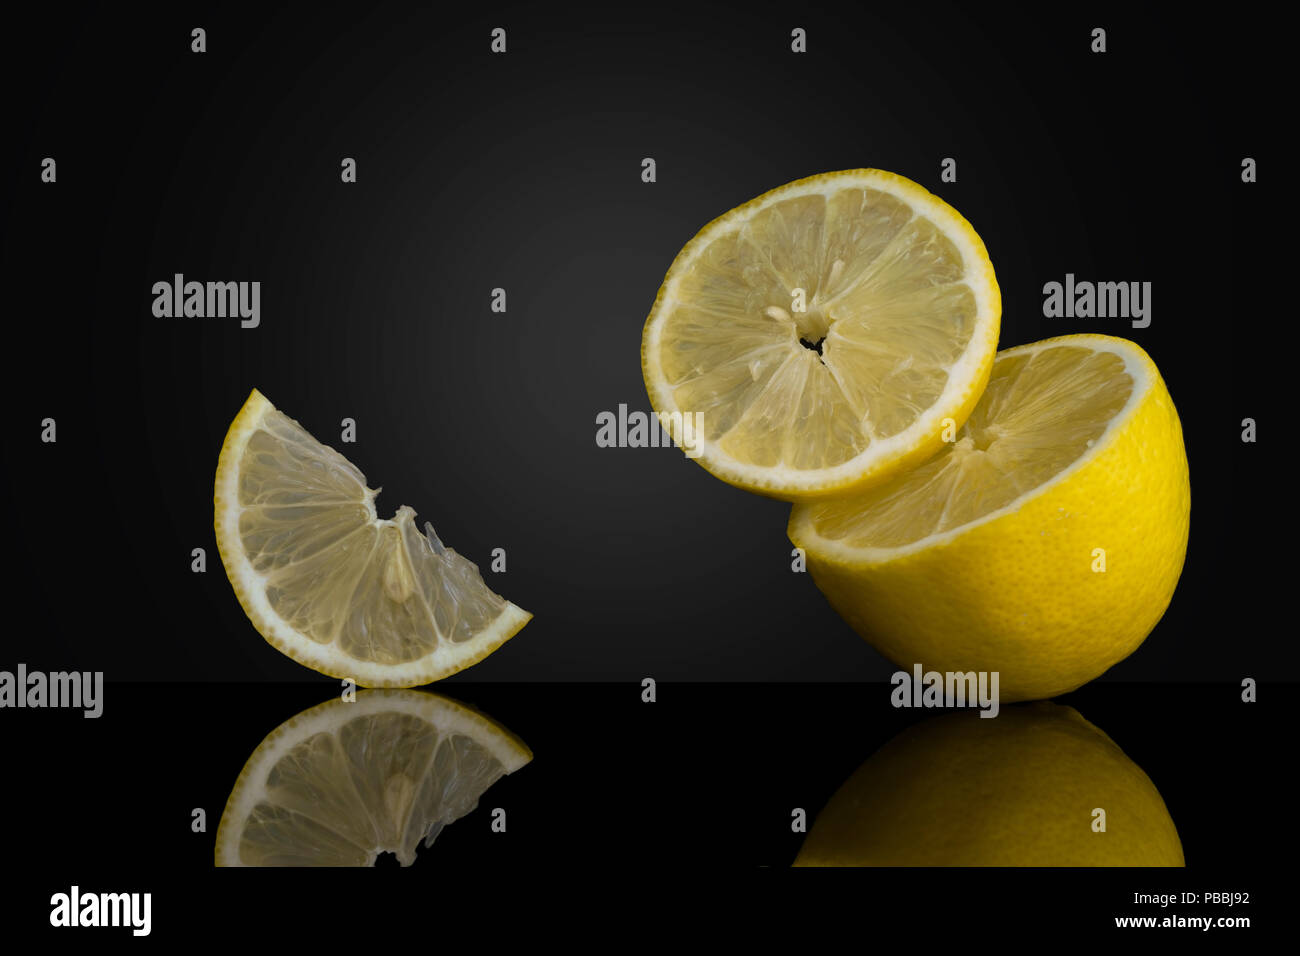 Gravity defying fresh lemon slices, pieces on dark background. Unusual artistic photo. - Stock Image